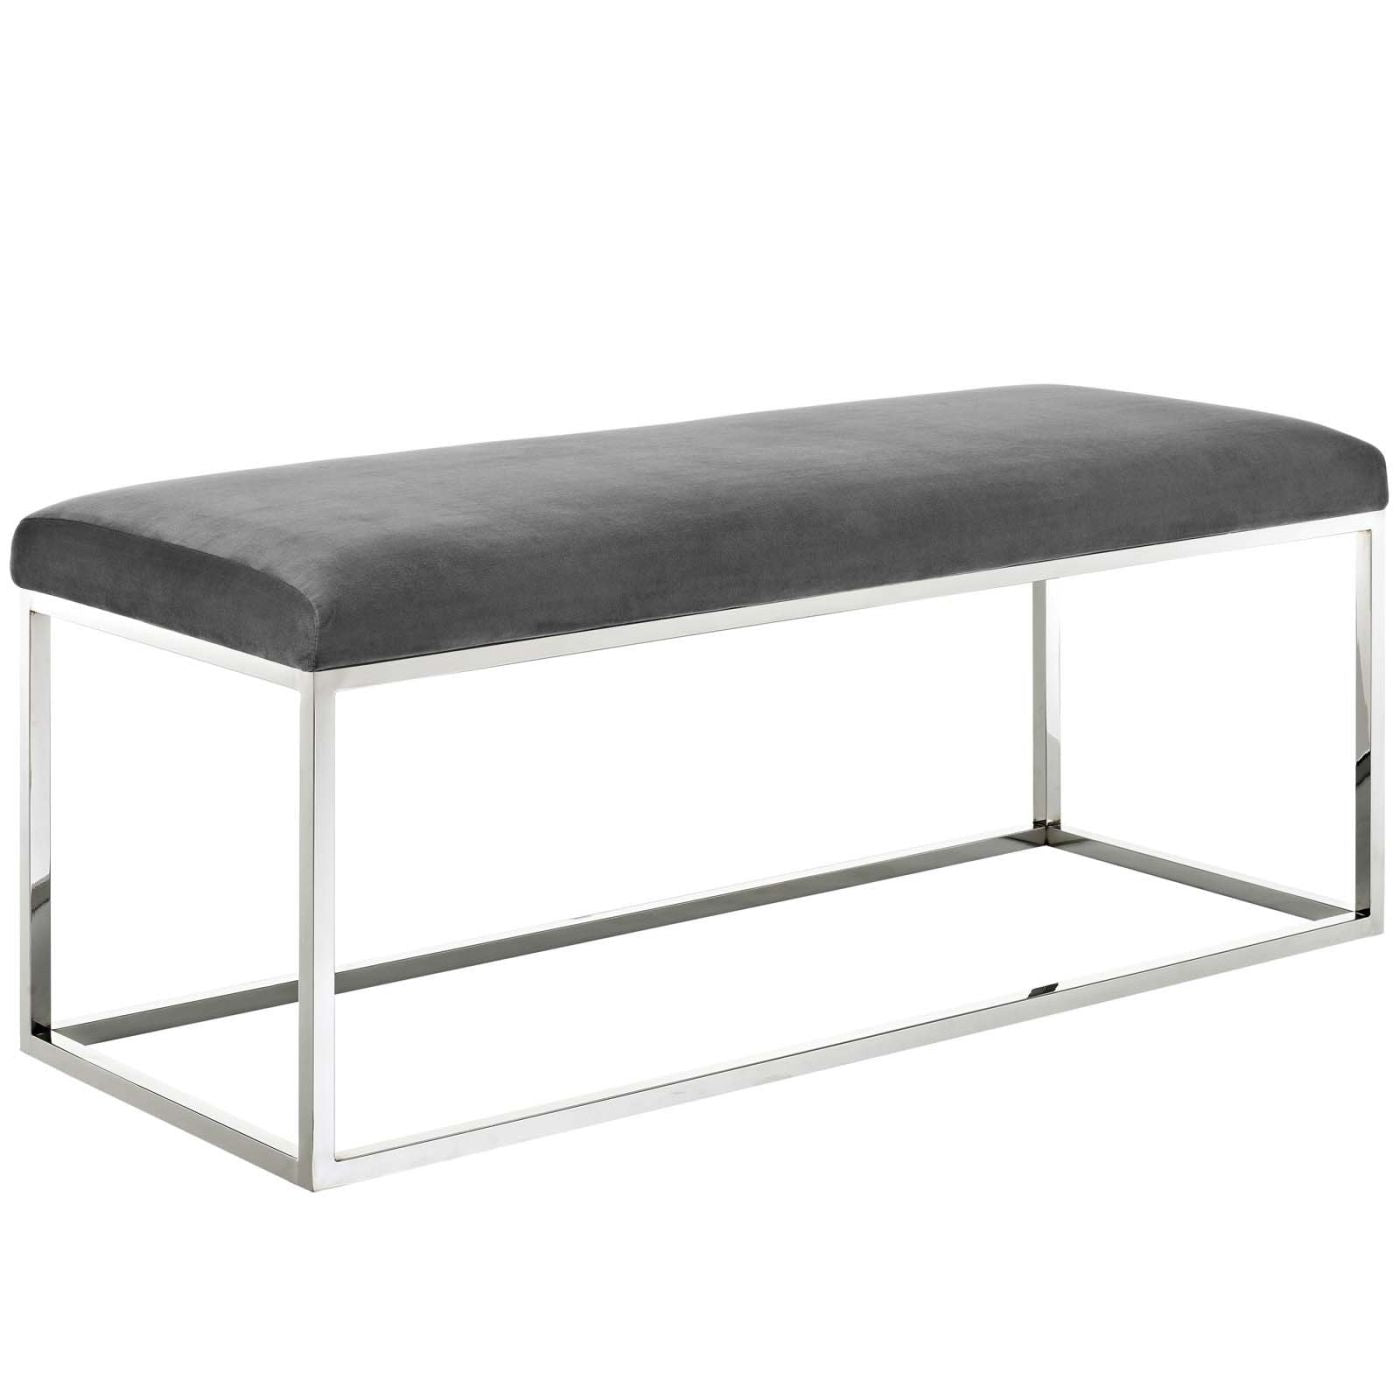 Amazing Modway Benches On Sale Eei 2869 Slv Gry Gaze Modern Bed Or Living Room Fabric Bench Only Only 233 80 At Contemporary Furniture Warehouse Pabps2019 Chair Design Images Pabps2019Com